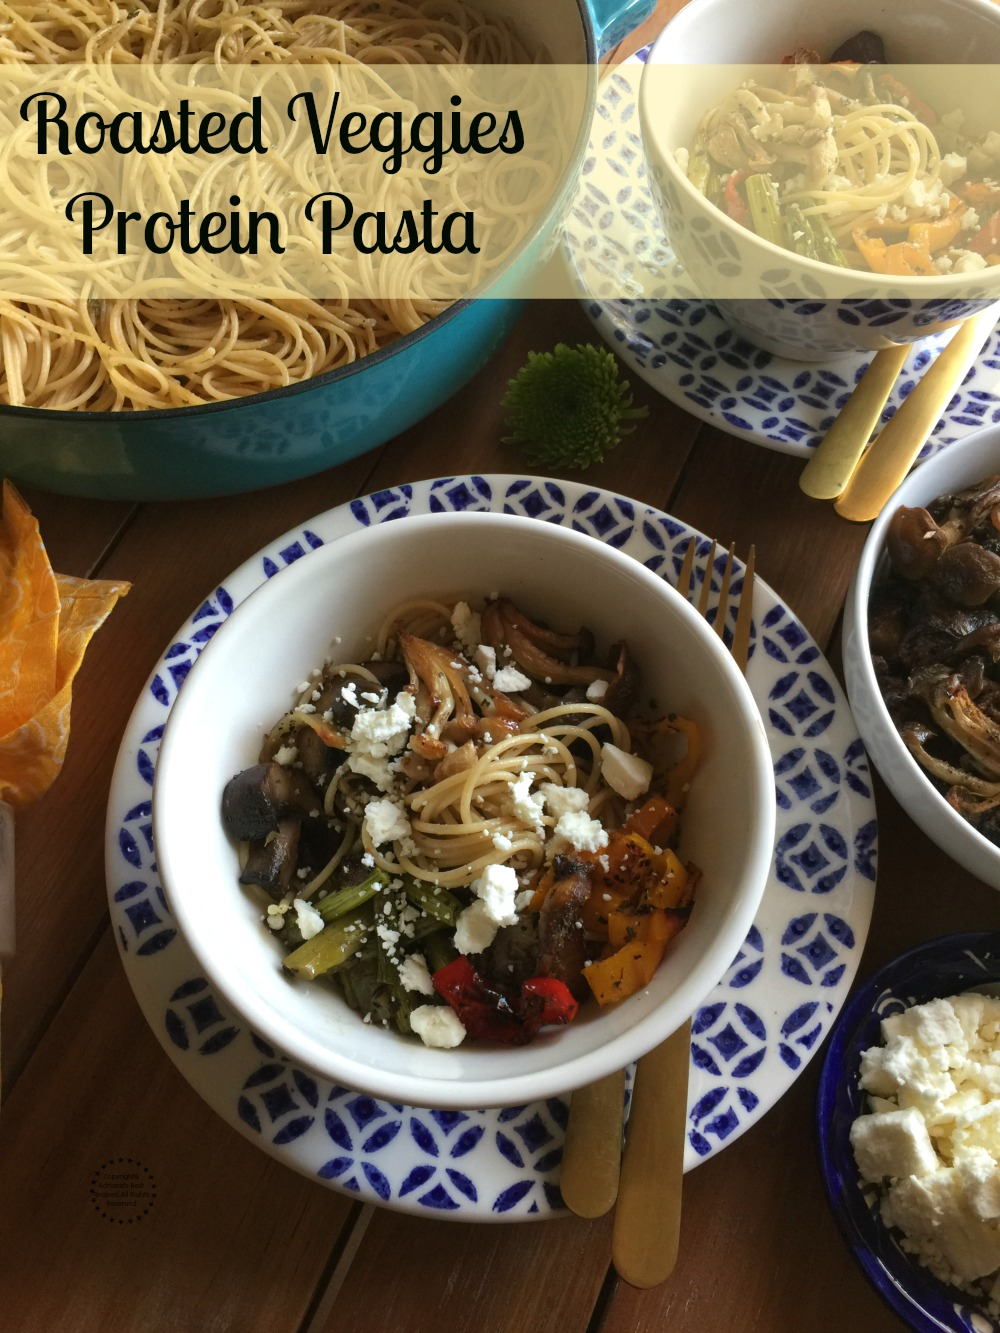 Roasted Veggies Protein Pasta made with fresh mushrooms, asparagus, sweet peppers and garlic